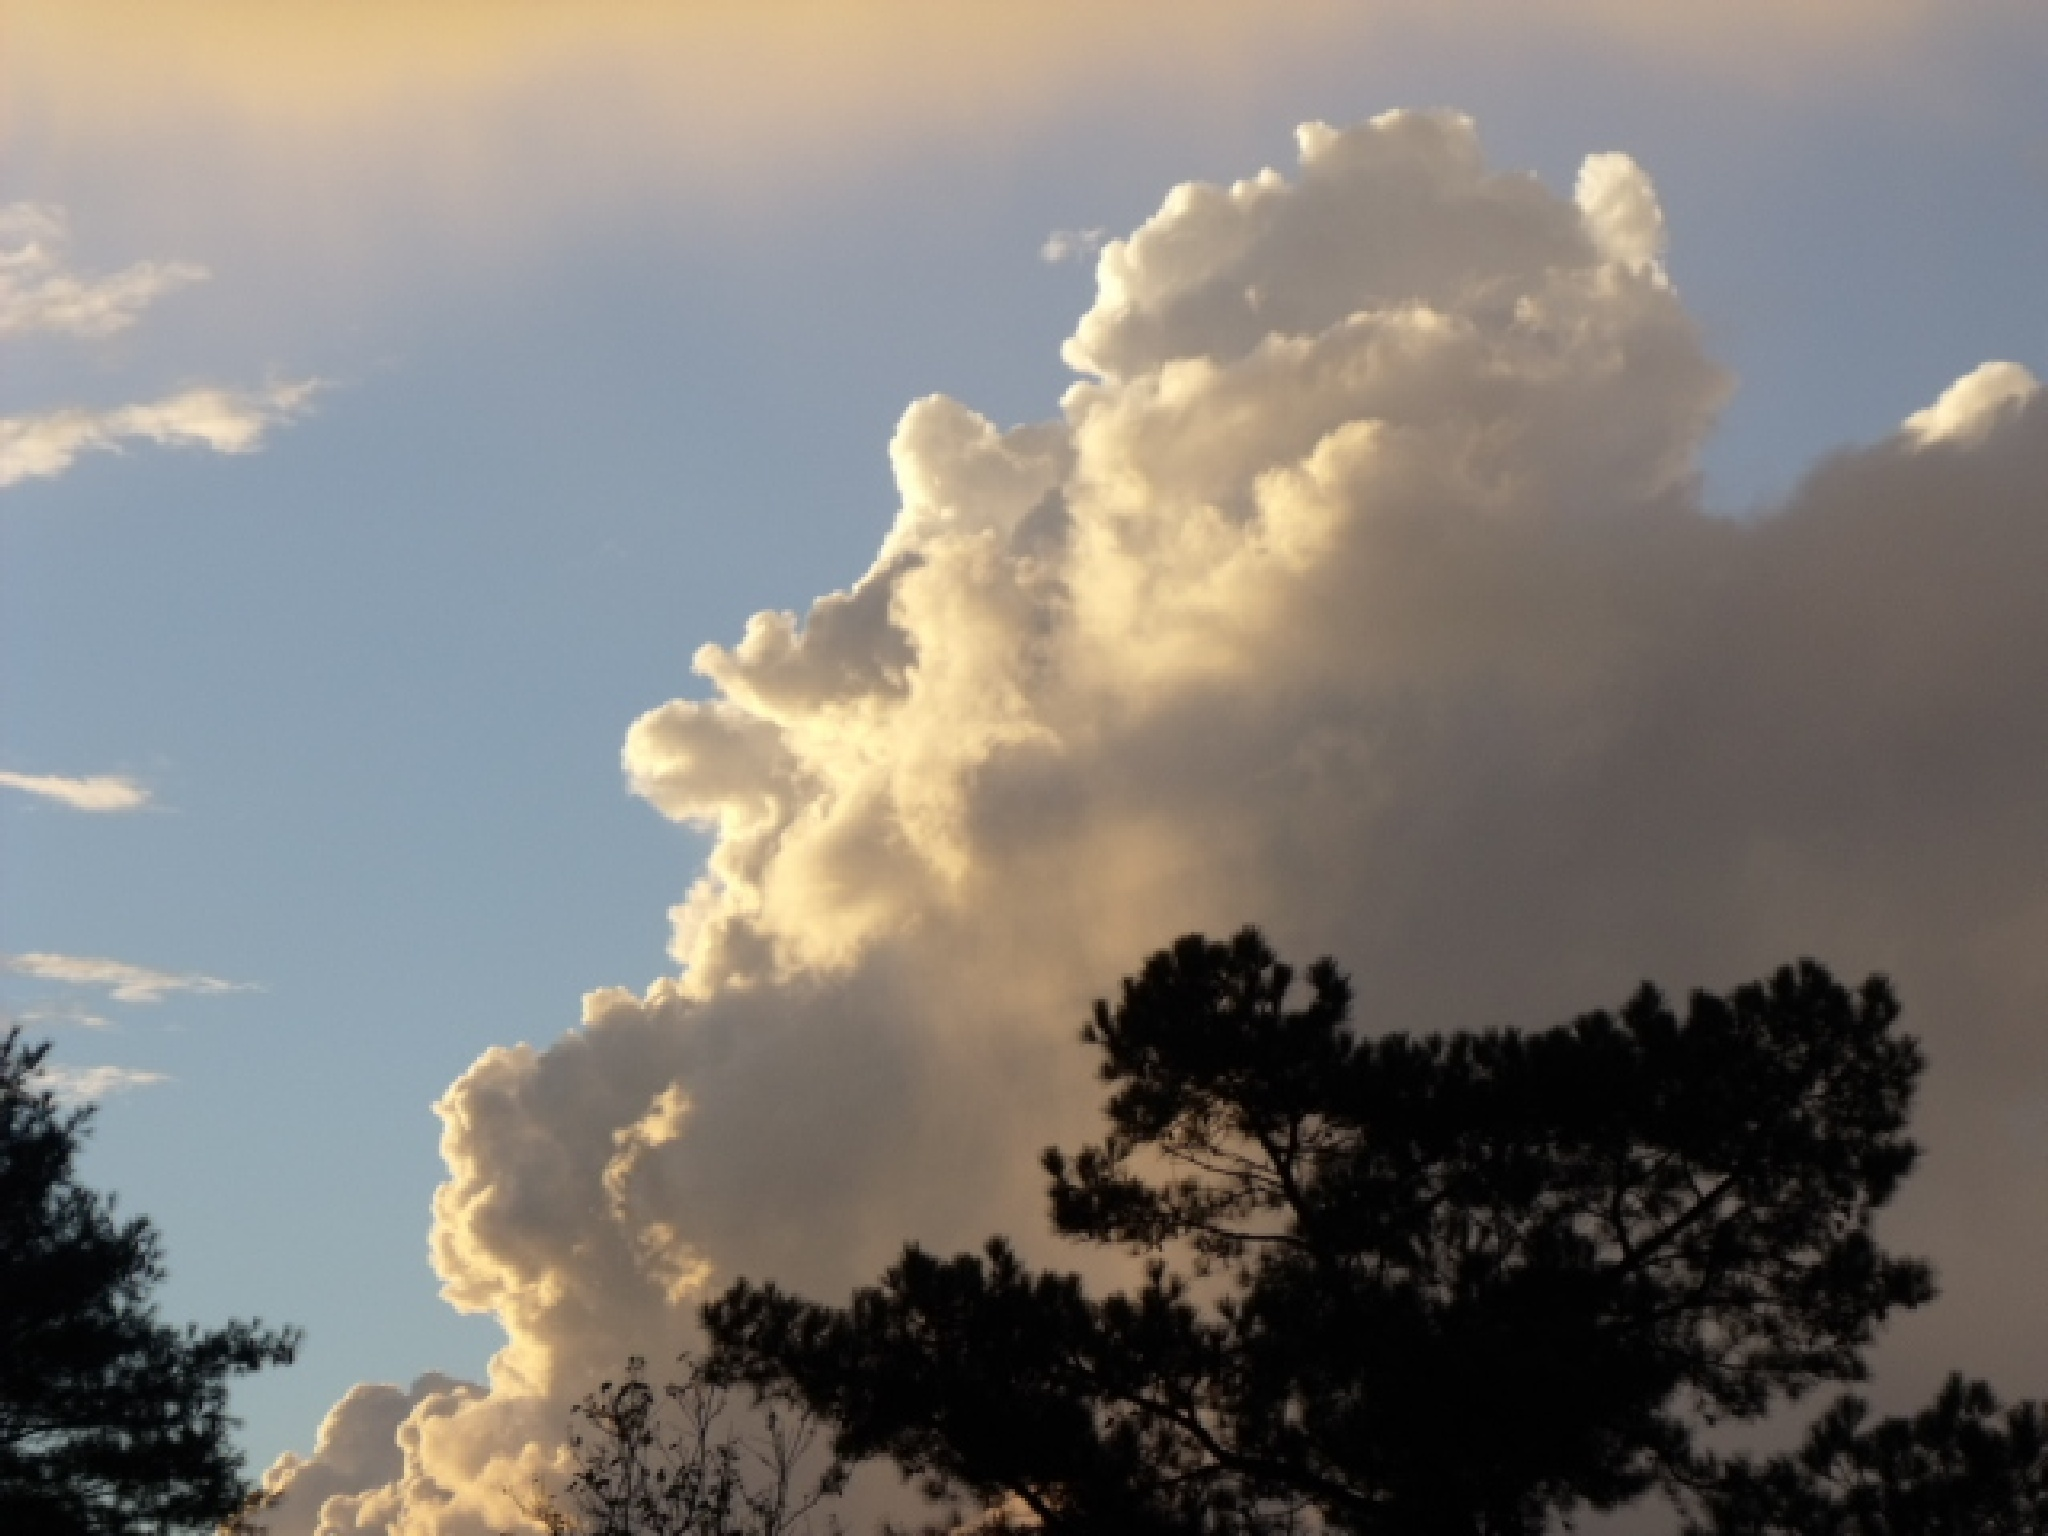 thunderstorm in the making by cindi.lucas.7